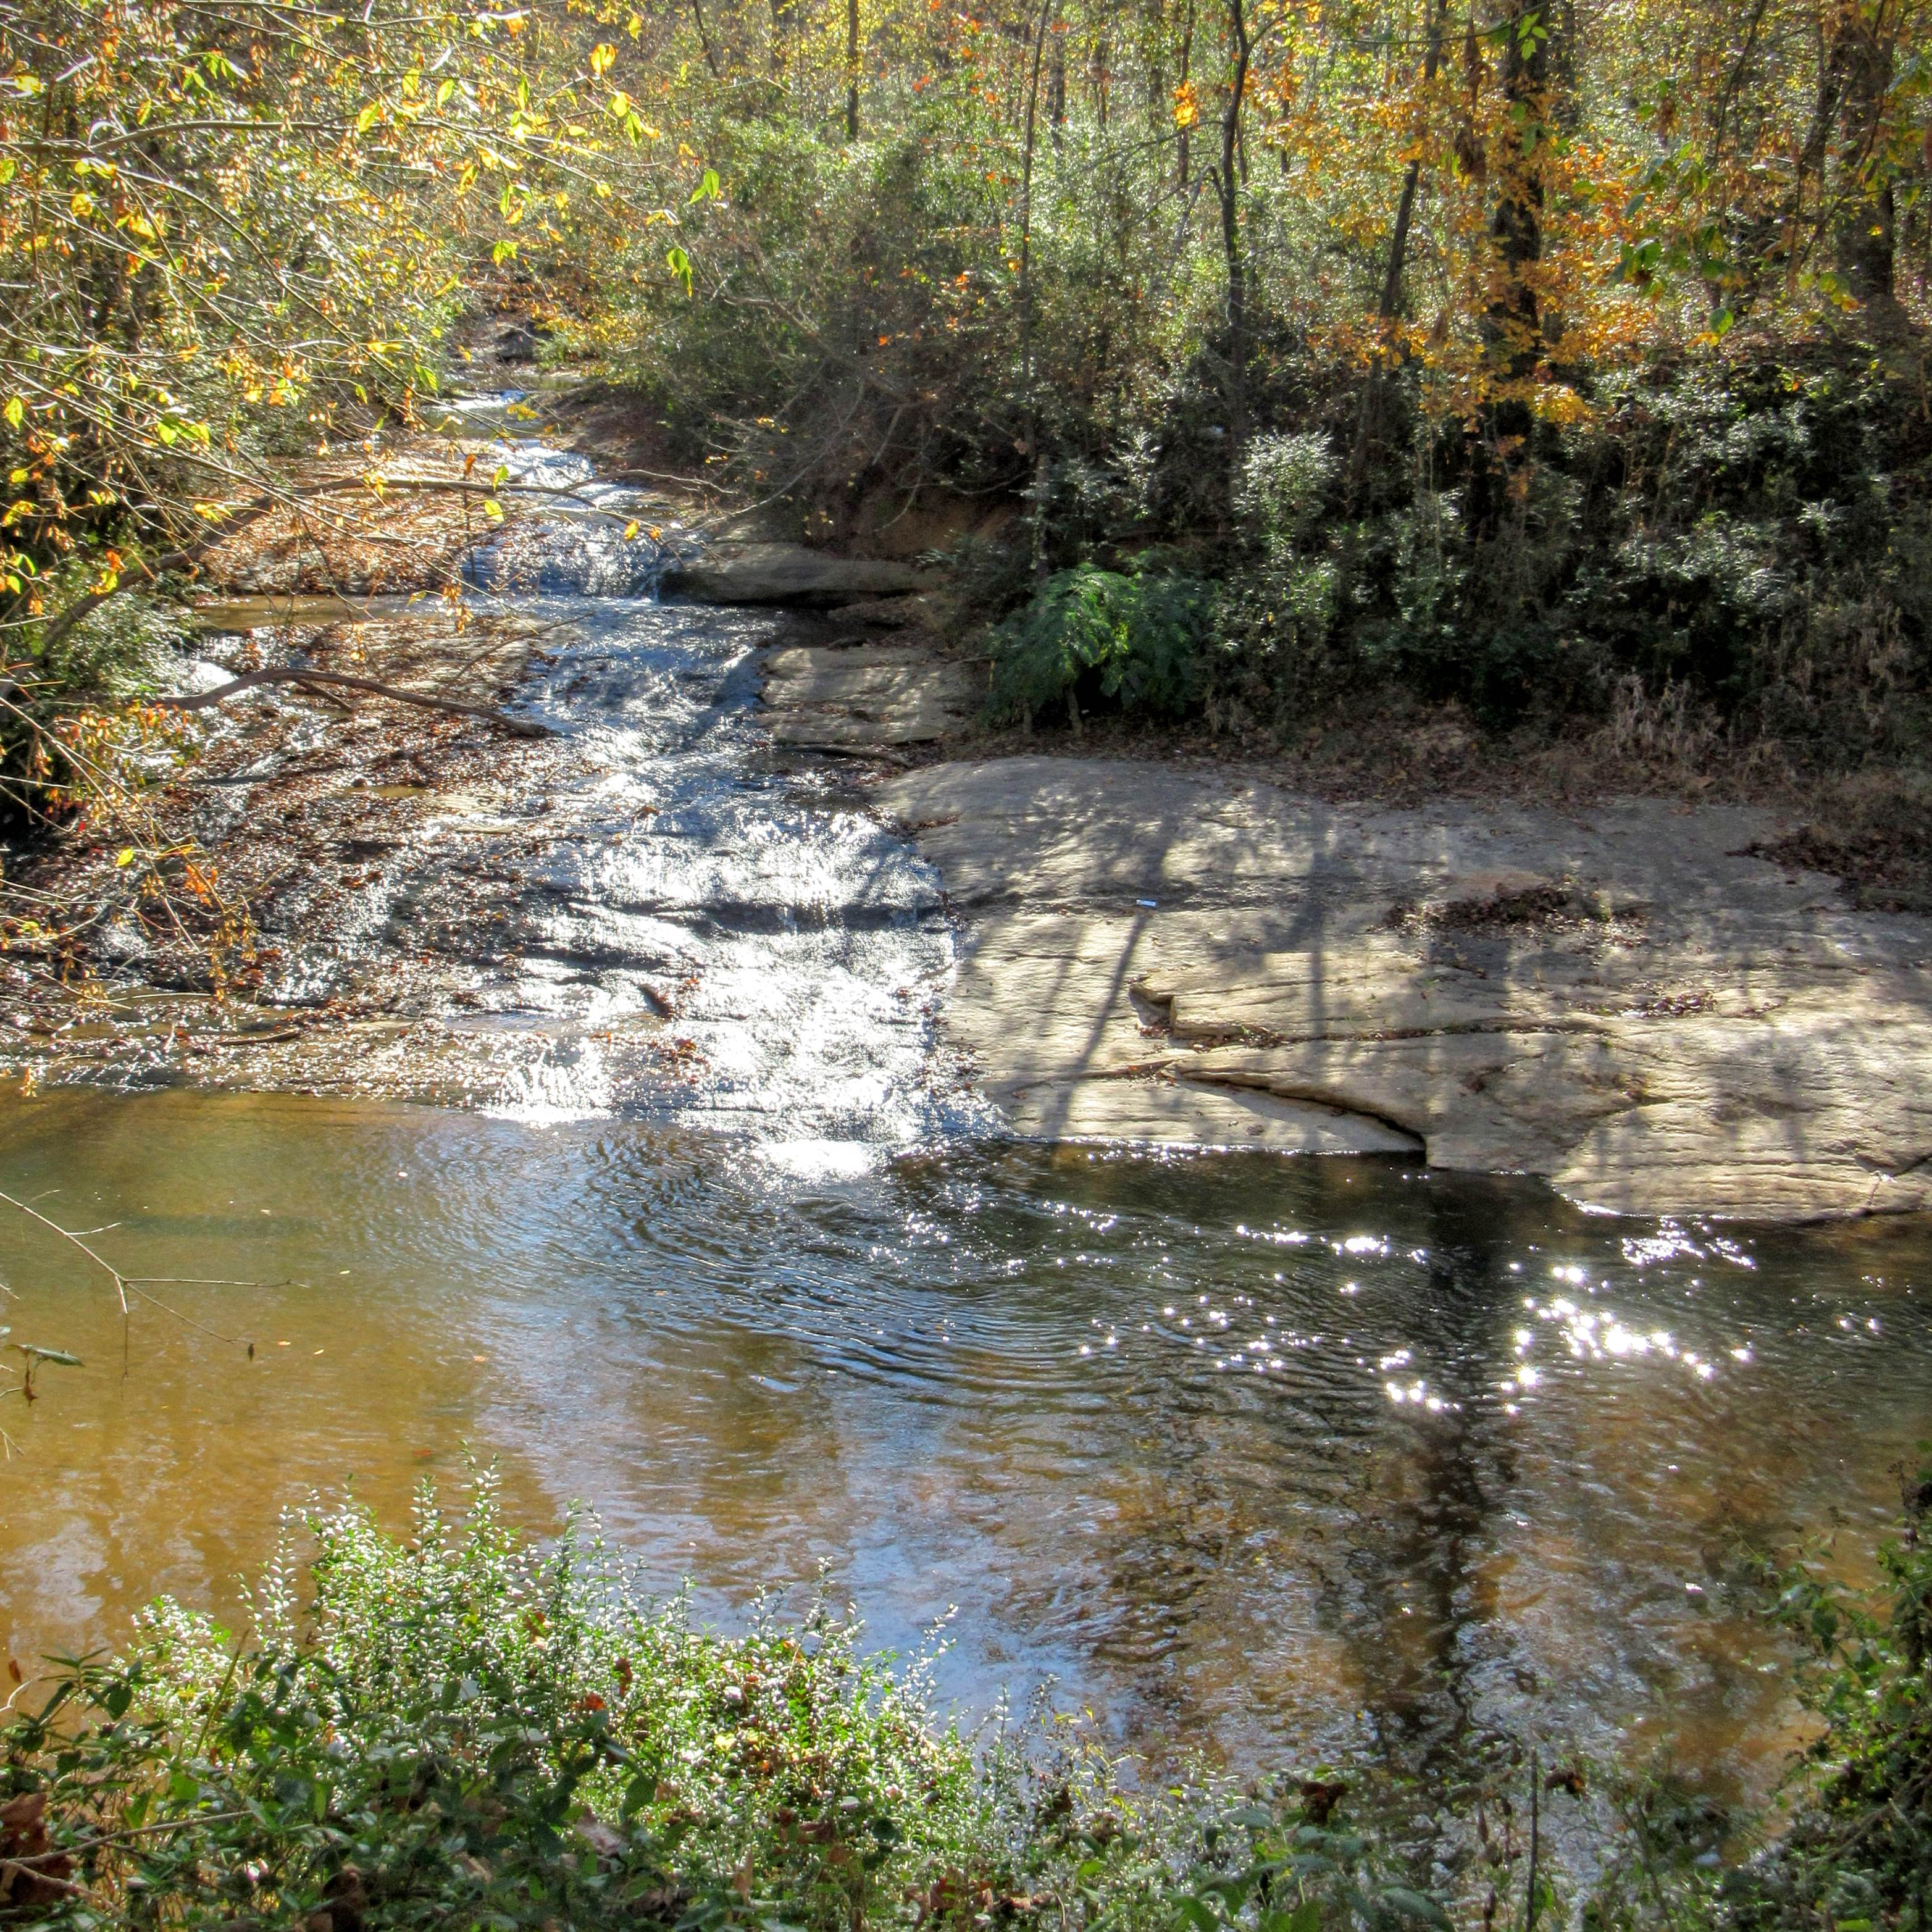 River viewing area. | Hiking in Shelby, North Carolina: the First Broad River Trail.